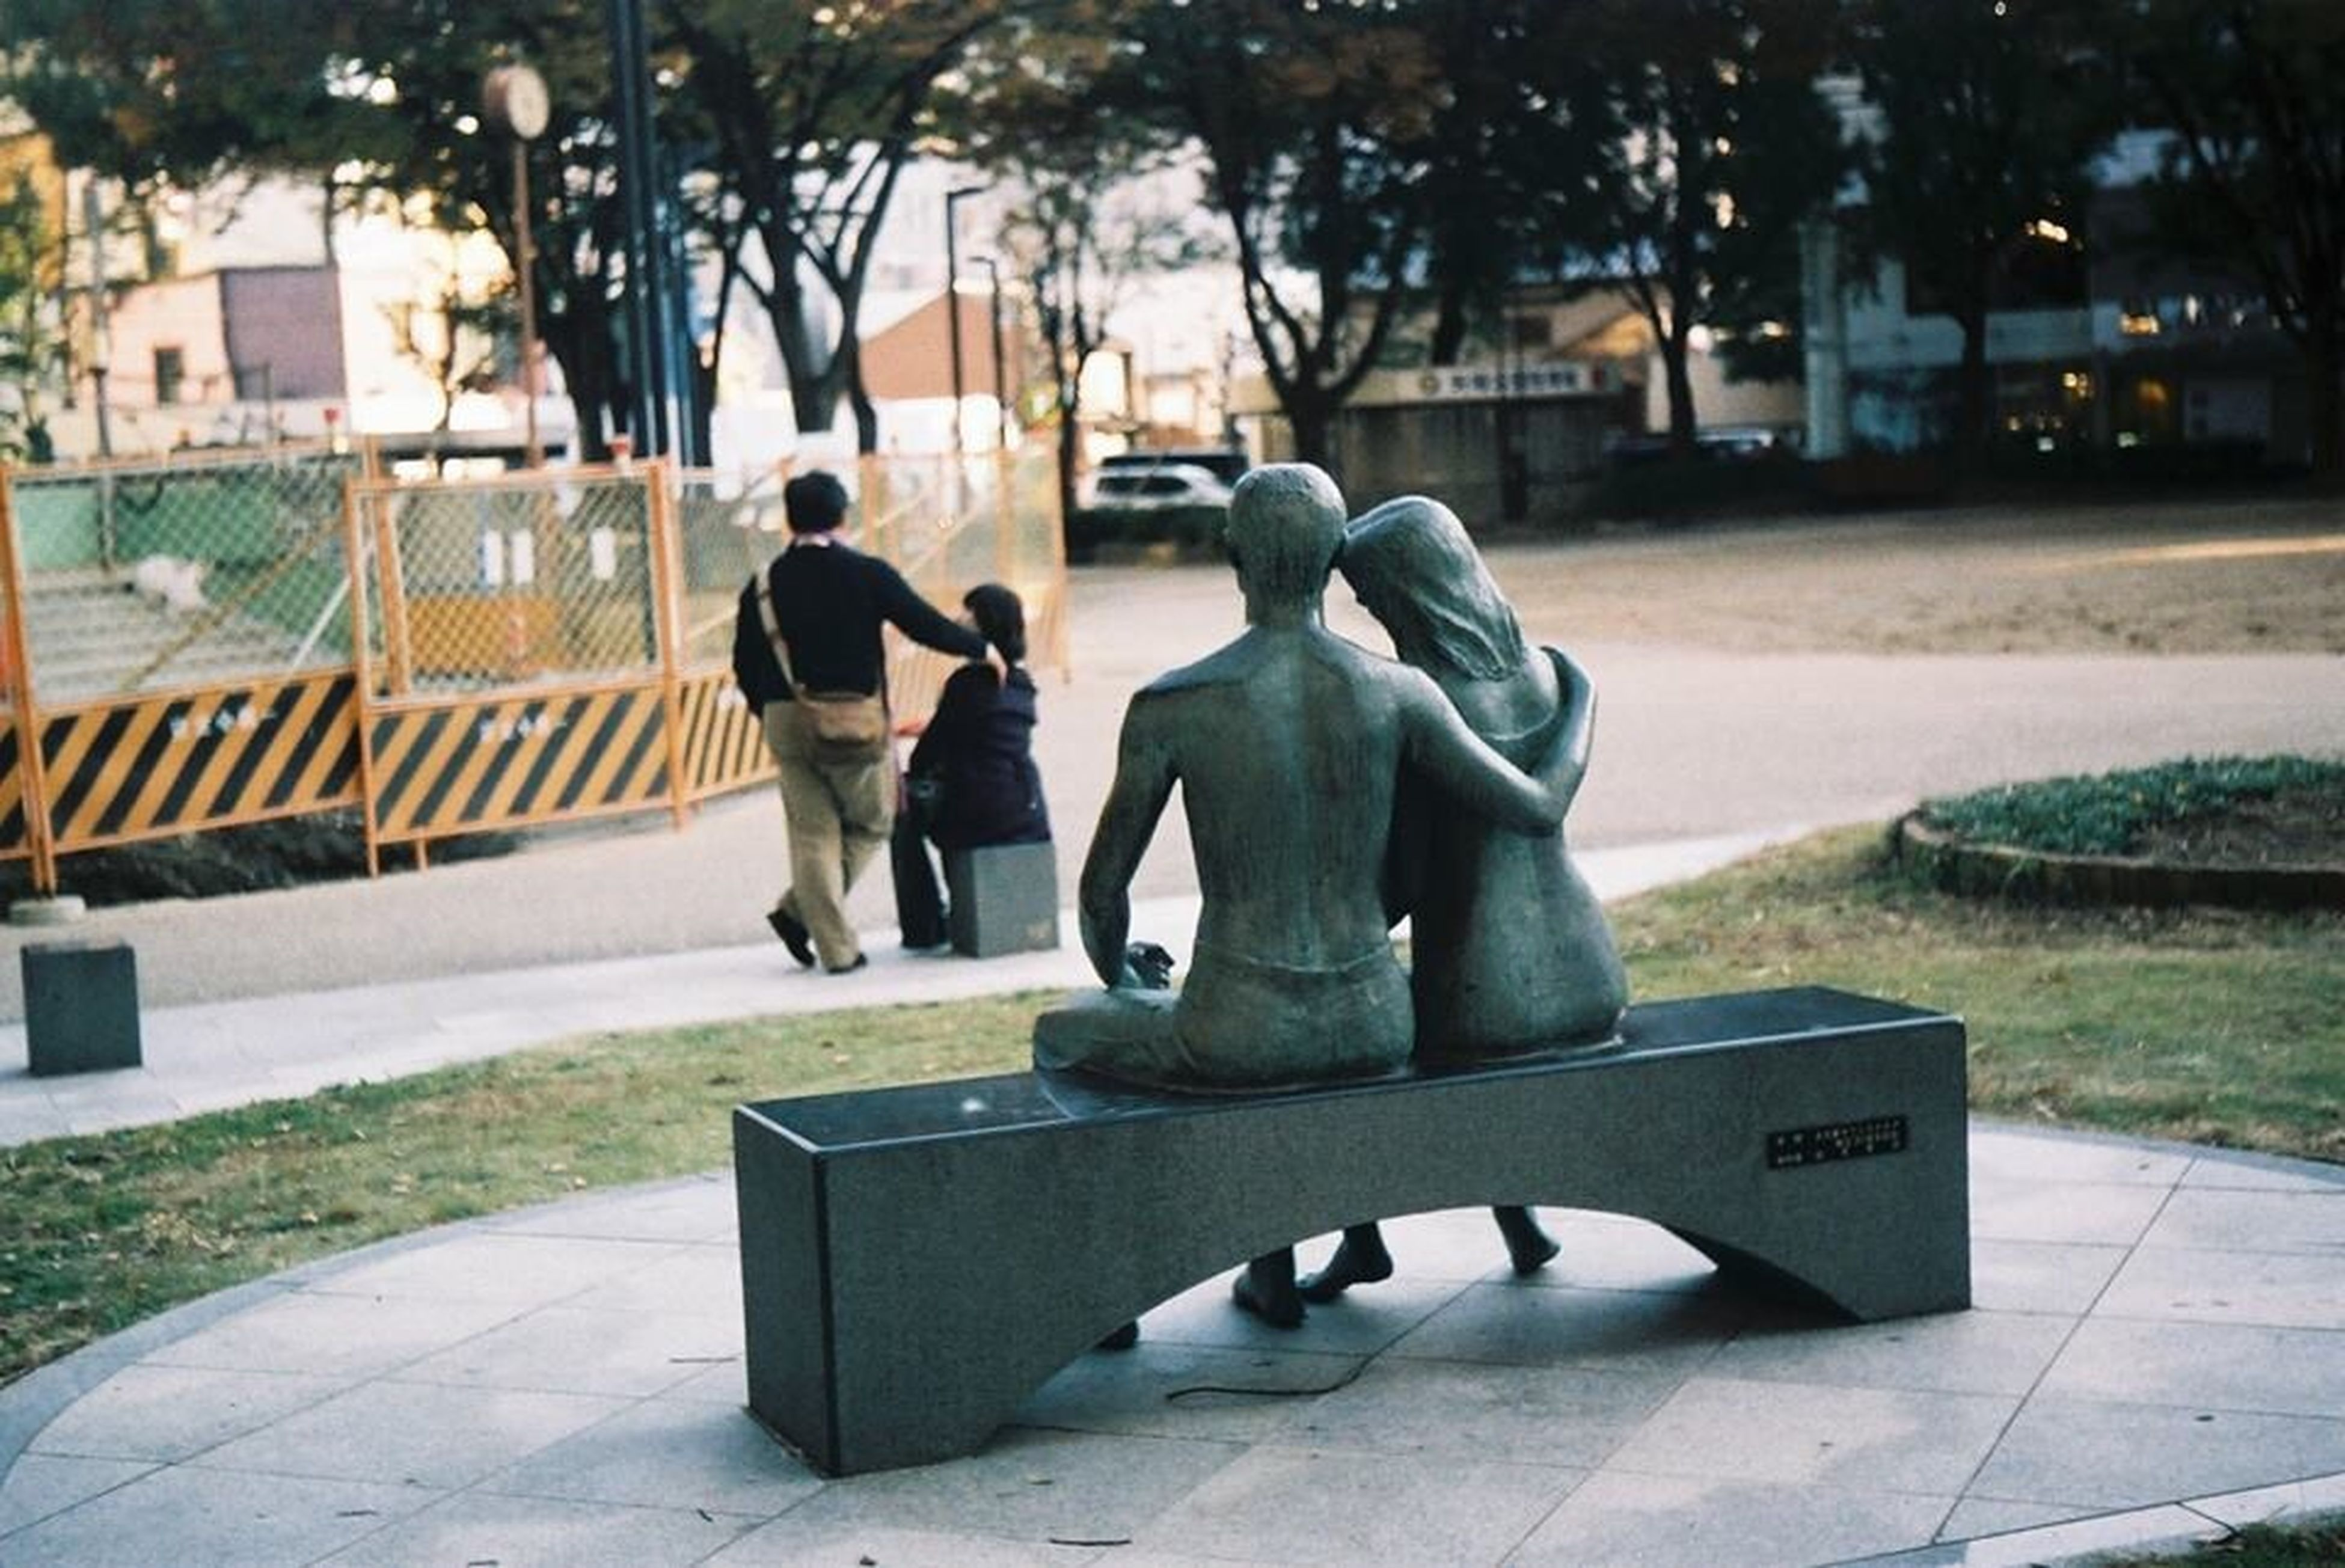 full length, tree, built structure, building exterior, architecture, men, lifestyles, leisure activity, human representation, sitting, park - man made space, rear view, city, sunlight, statue, outdoors, sculpture, day